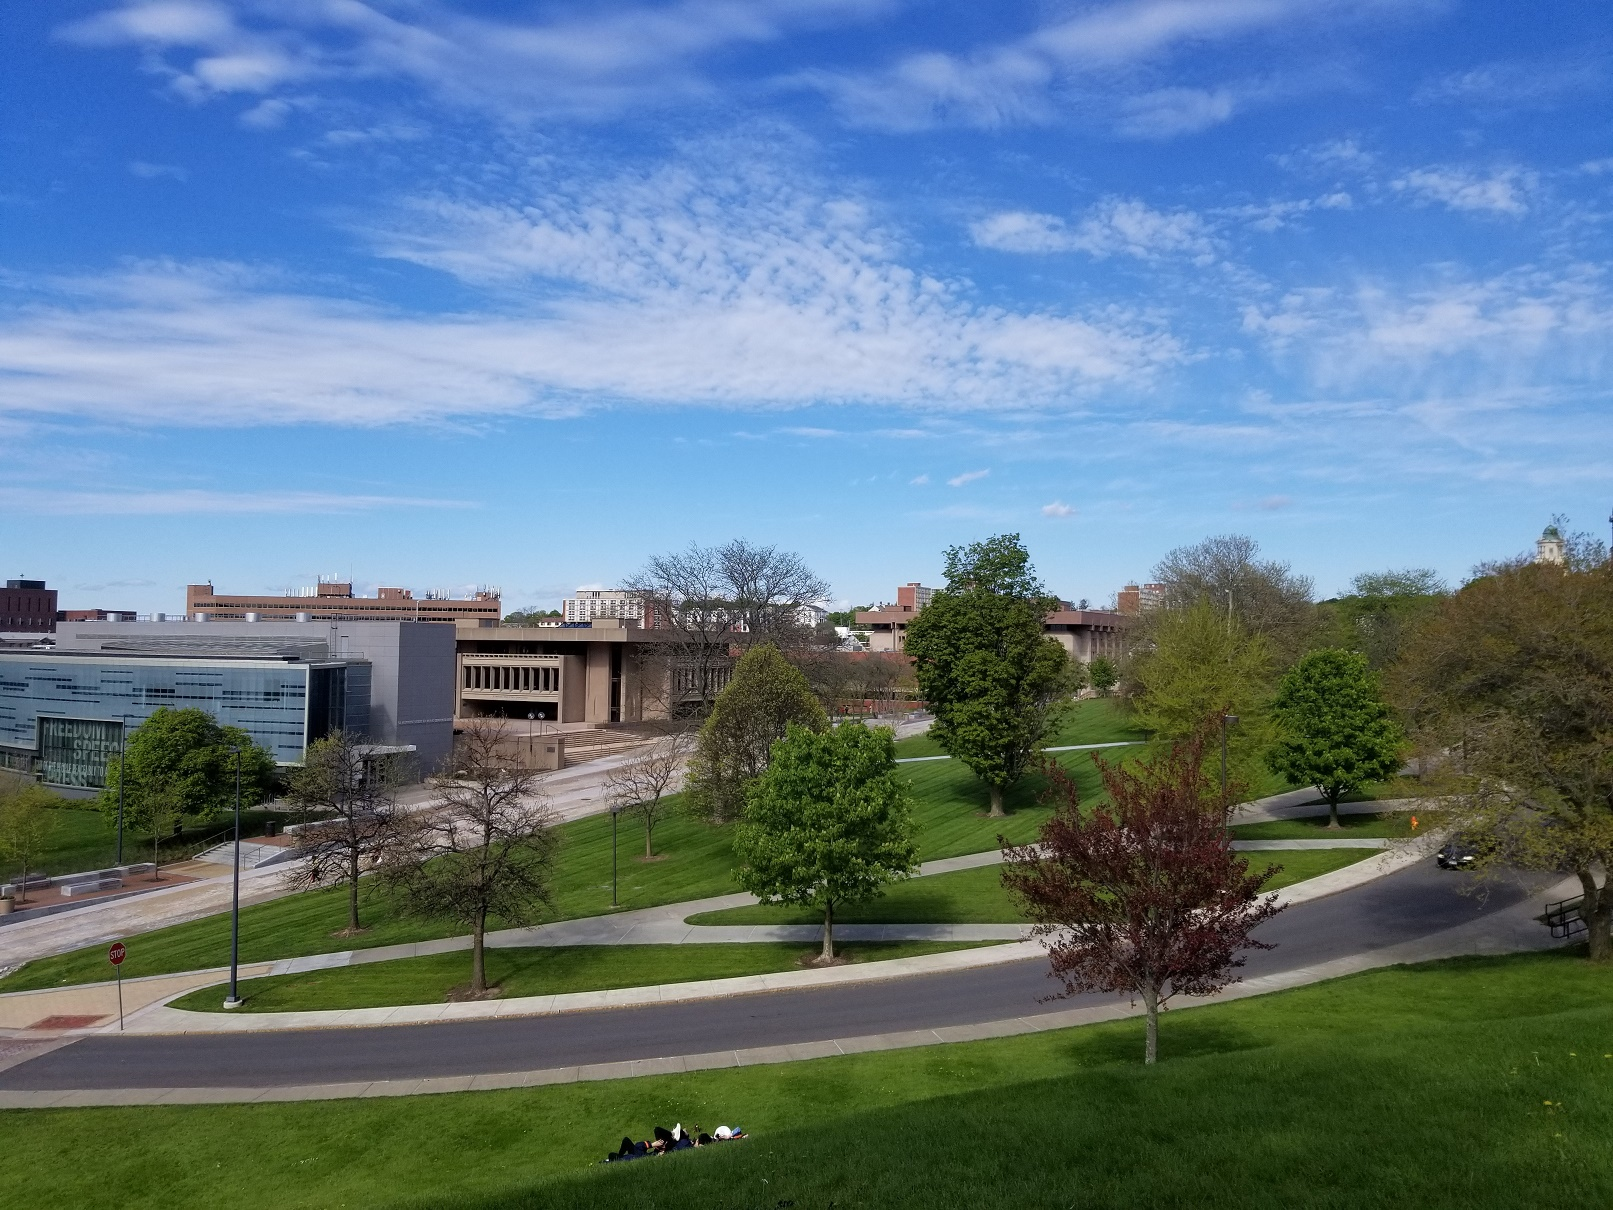 blue sky over campus buildings with trees in foreground